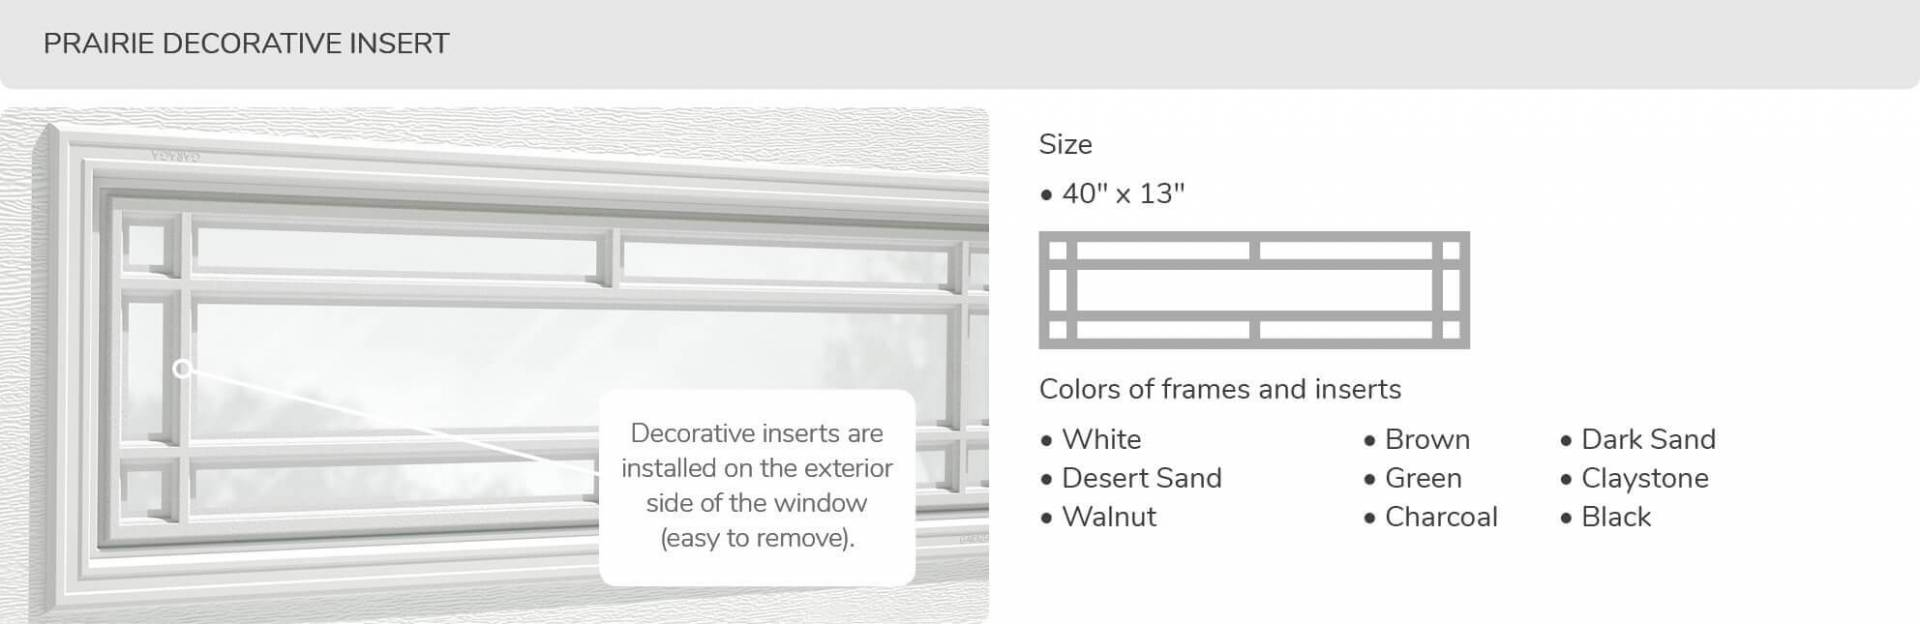 Prairie Decorative Inserts, 40' x 13', available for door R-16